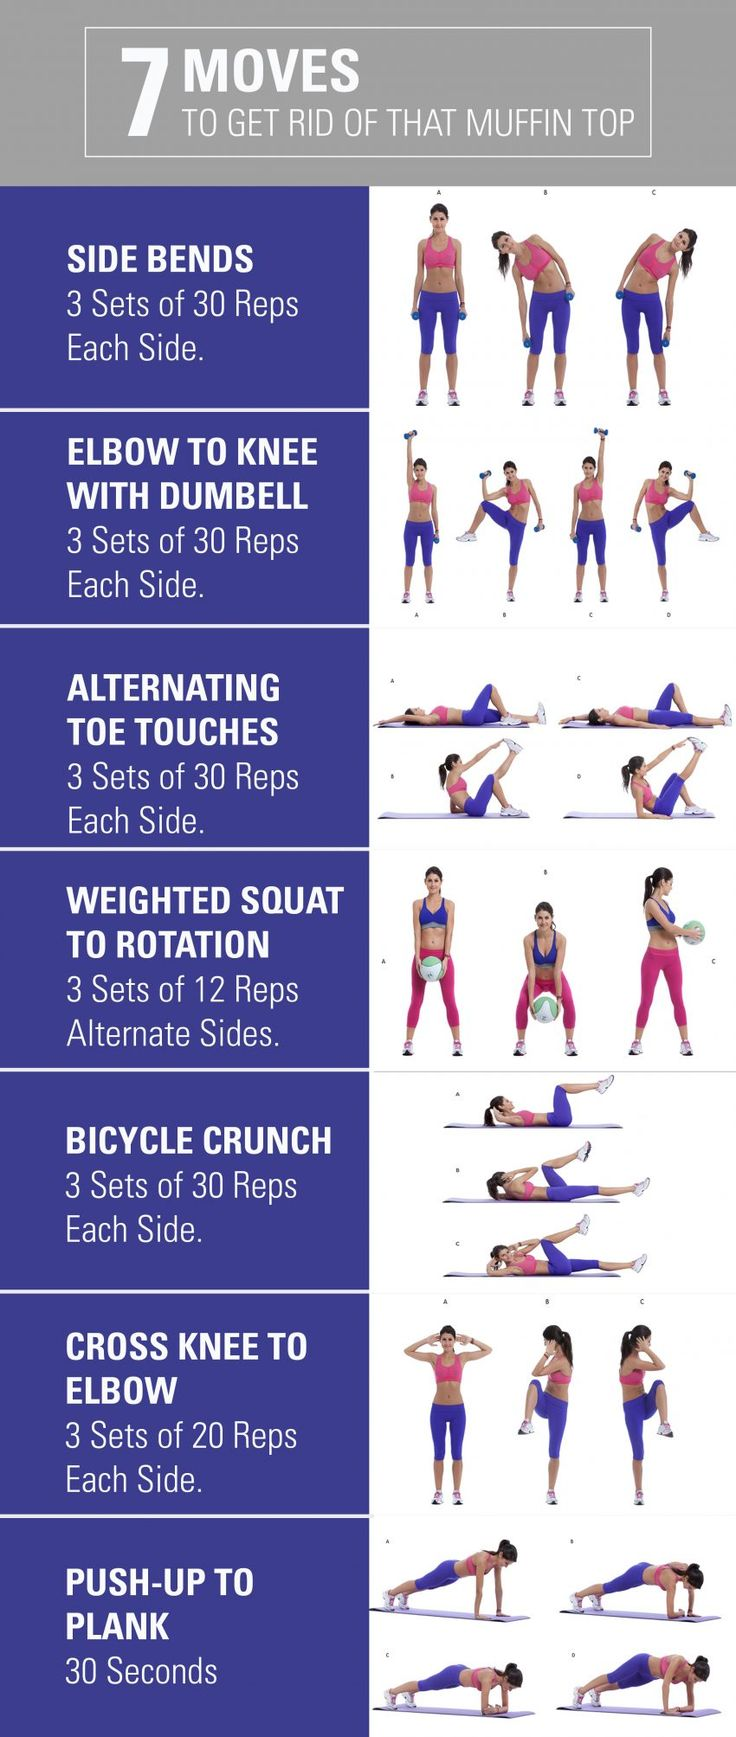 7 Exercises To Get Rid Of Muffin Top | Fitness Republic